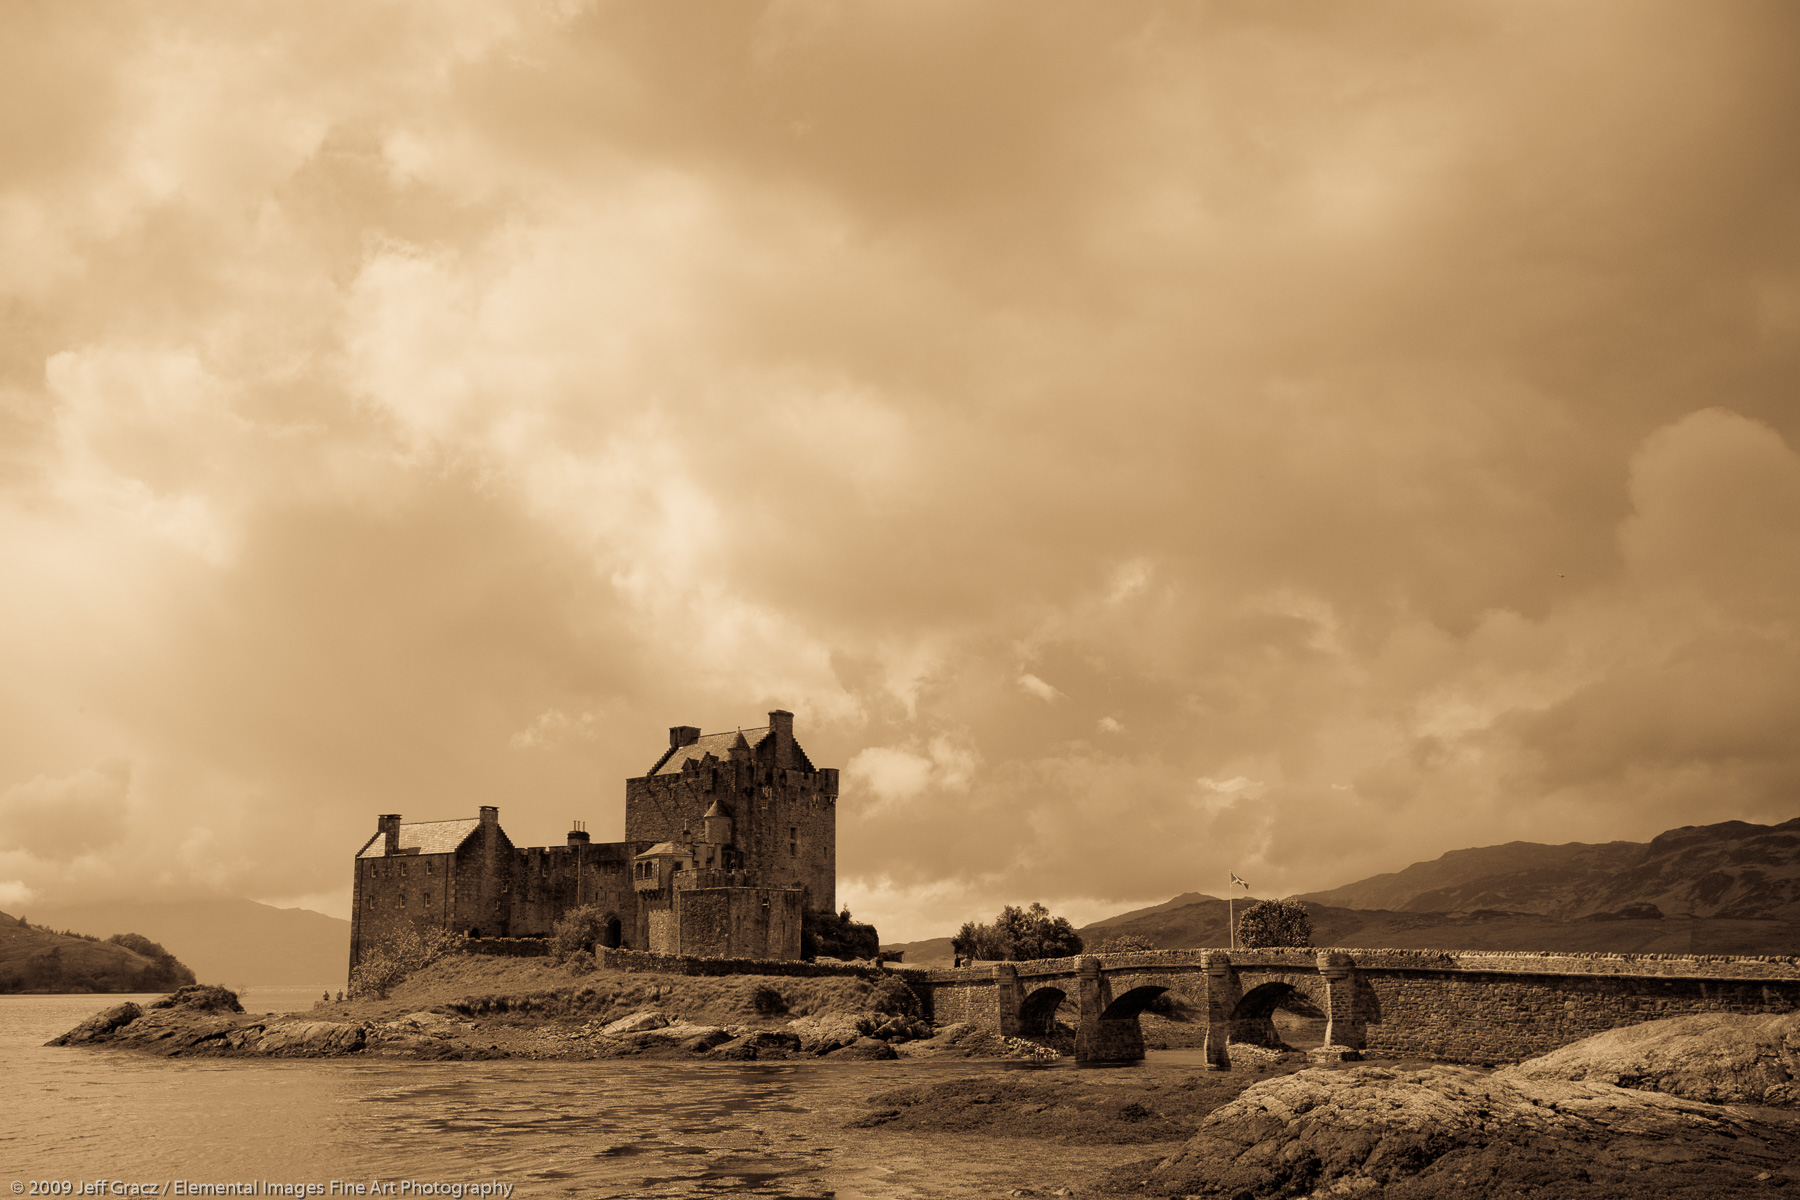 Eilean Donan Castle | Dornie | Scotland | United Kingdom - © © 2009 Jeff Gracz / Elemental Images Fine Art Photography - All Rights Reserved Worldwide